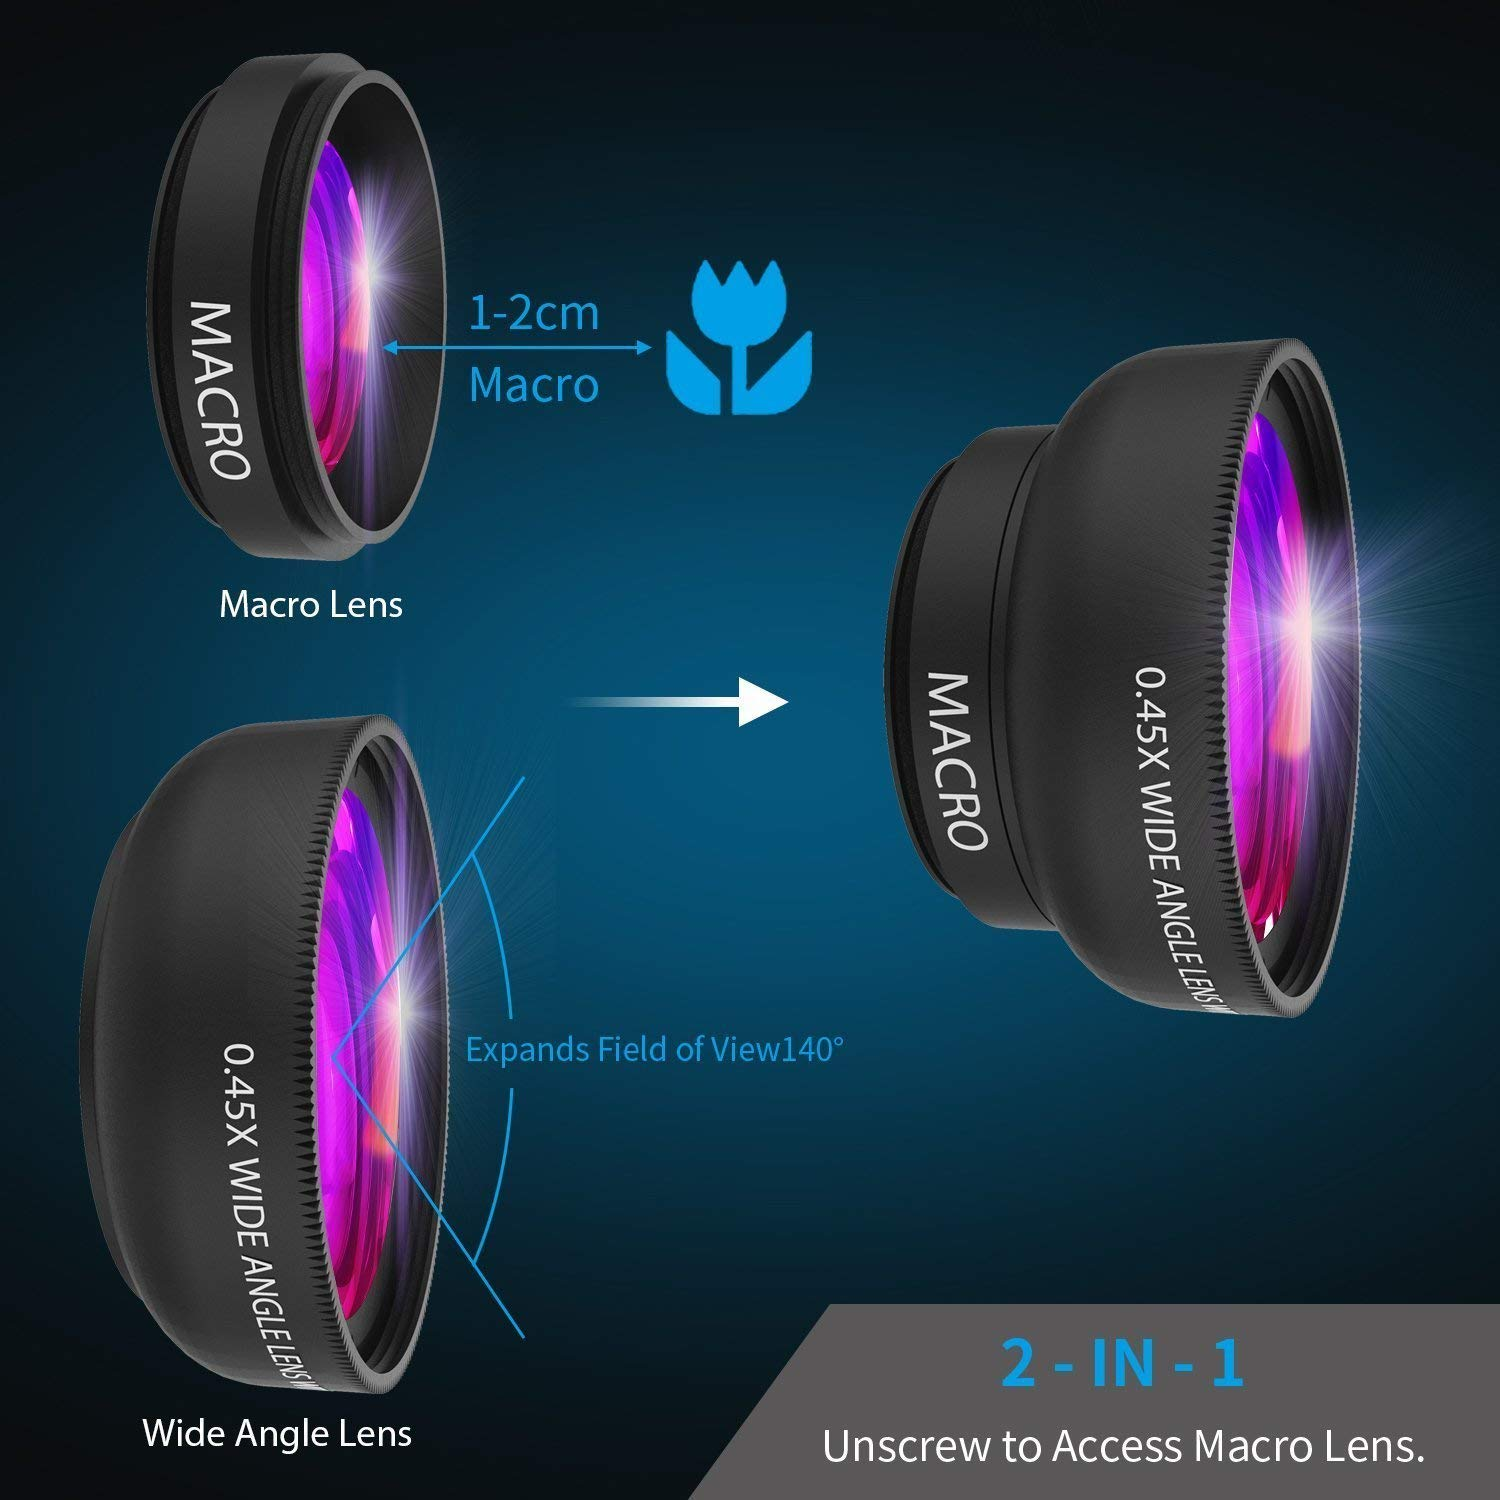 iPhone Camera Lens 0 45X Super Wide Angle Lens & 12 5X Macro Lens 2 in 1  Professional HD Cell Phone Camera Lens Kit for iPhone X 8 7 6S 6S Plus 6 5S